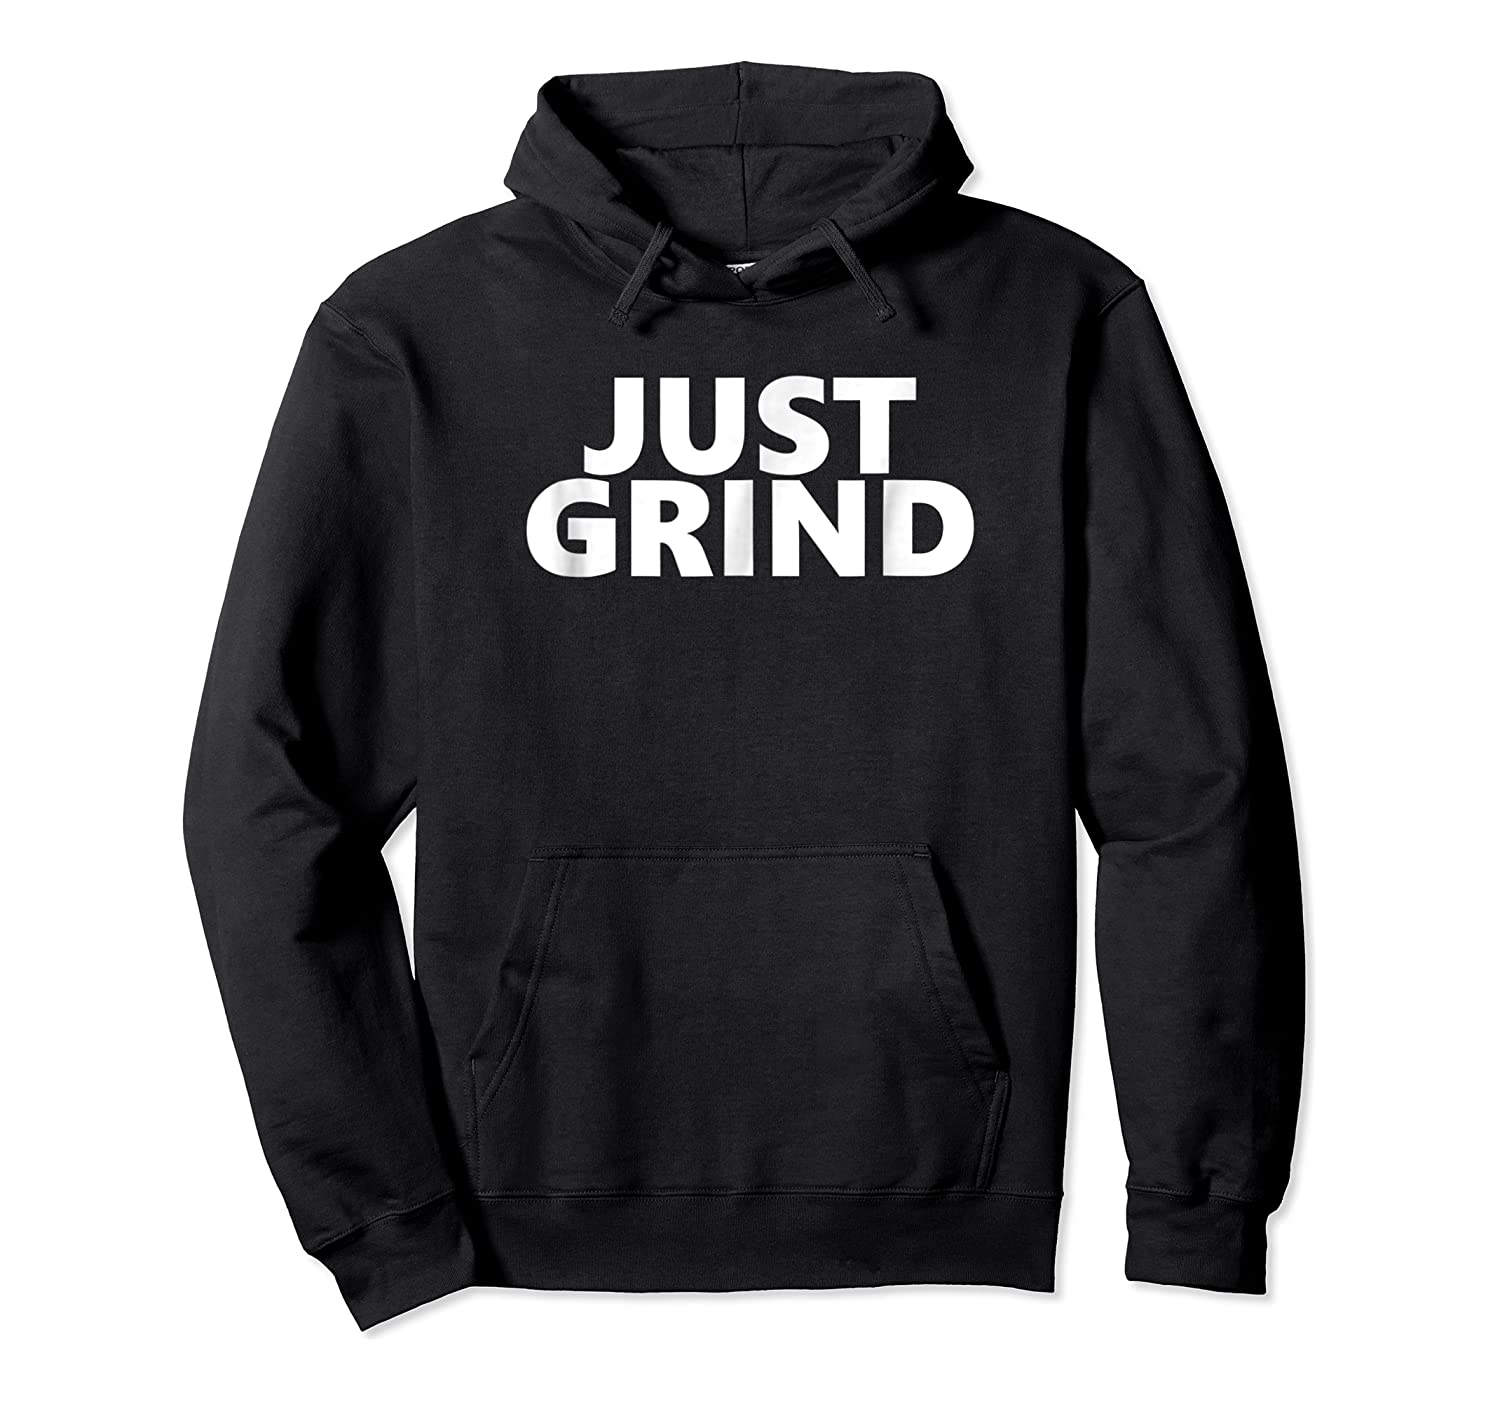 Just Grind Motivational Shirts Unisex Pullover Hoodie